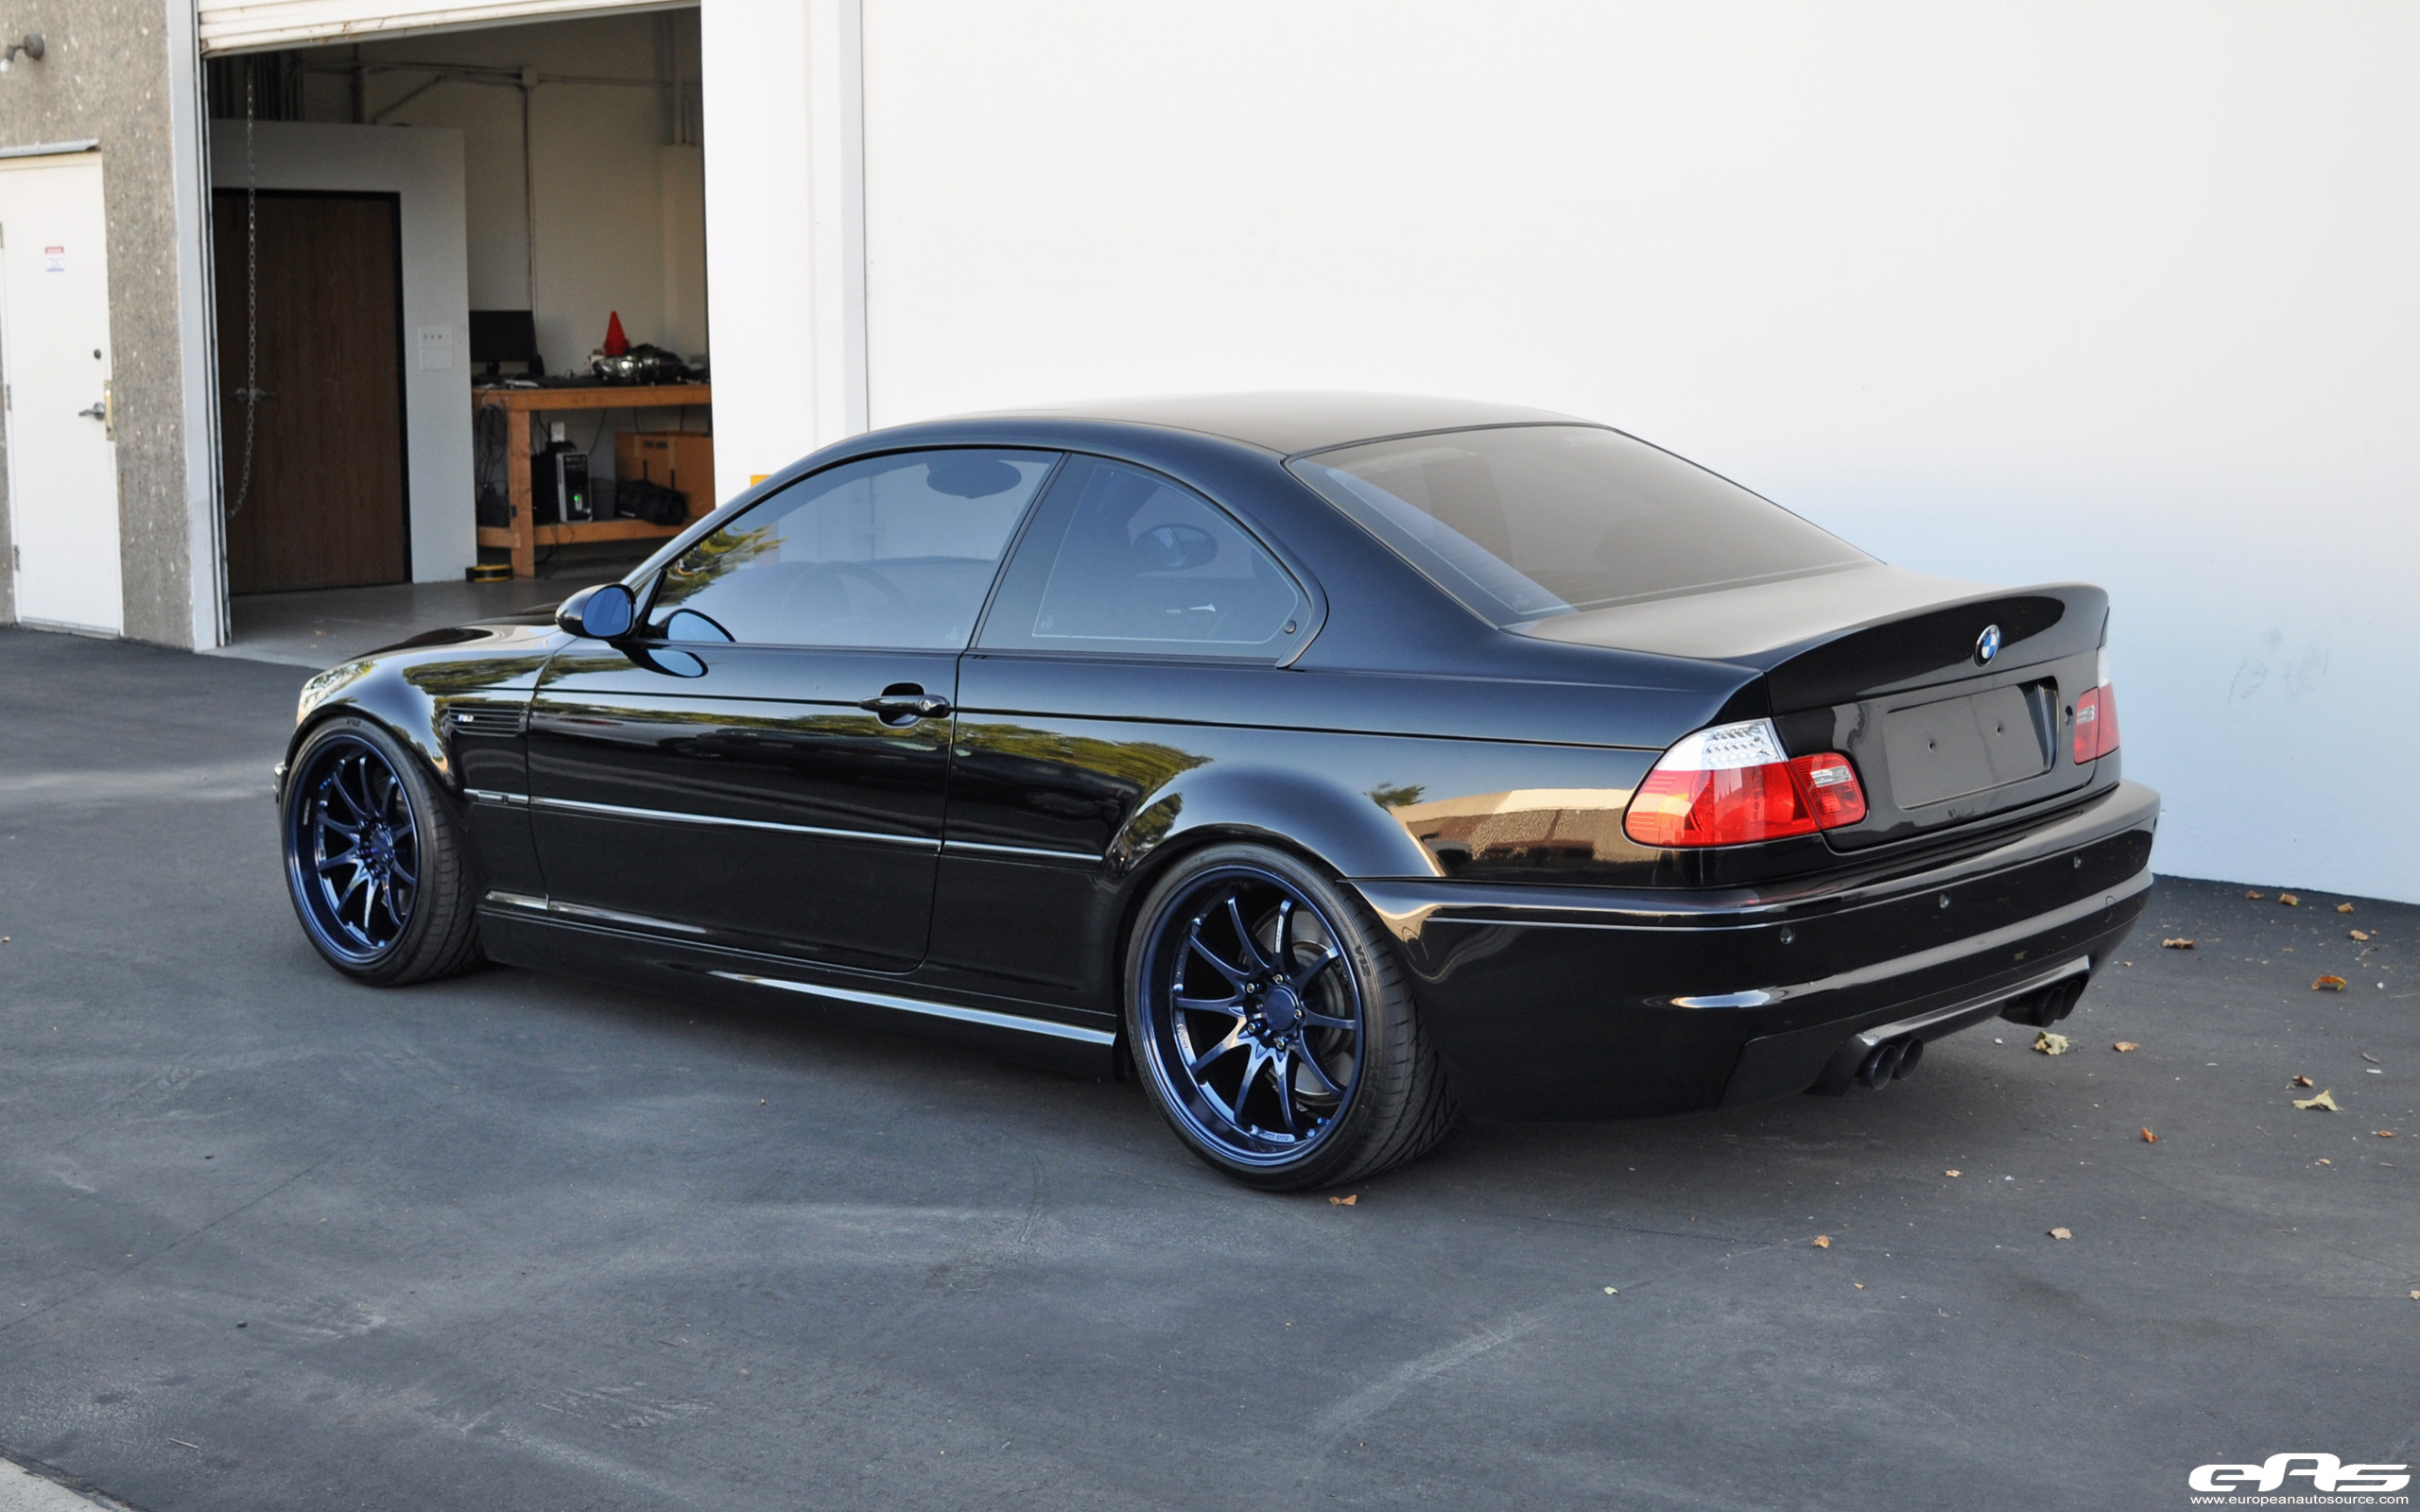 Black E46 M3 With Magnesium Blue Volk CE28 Wheels BMW